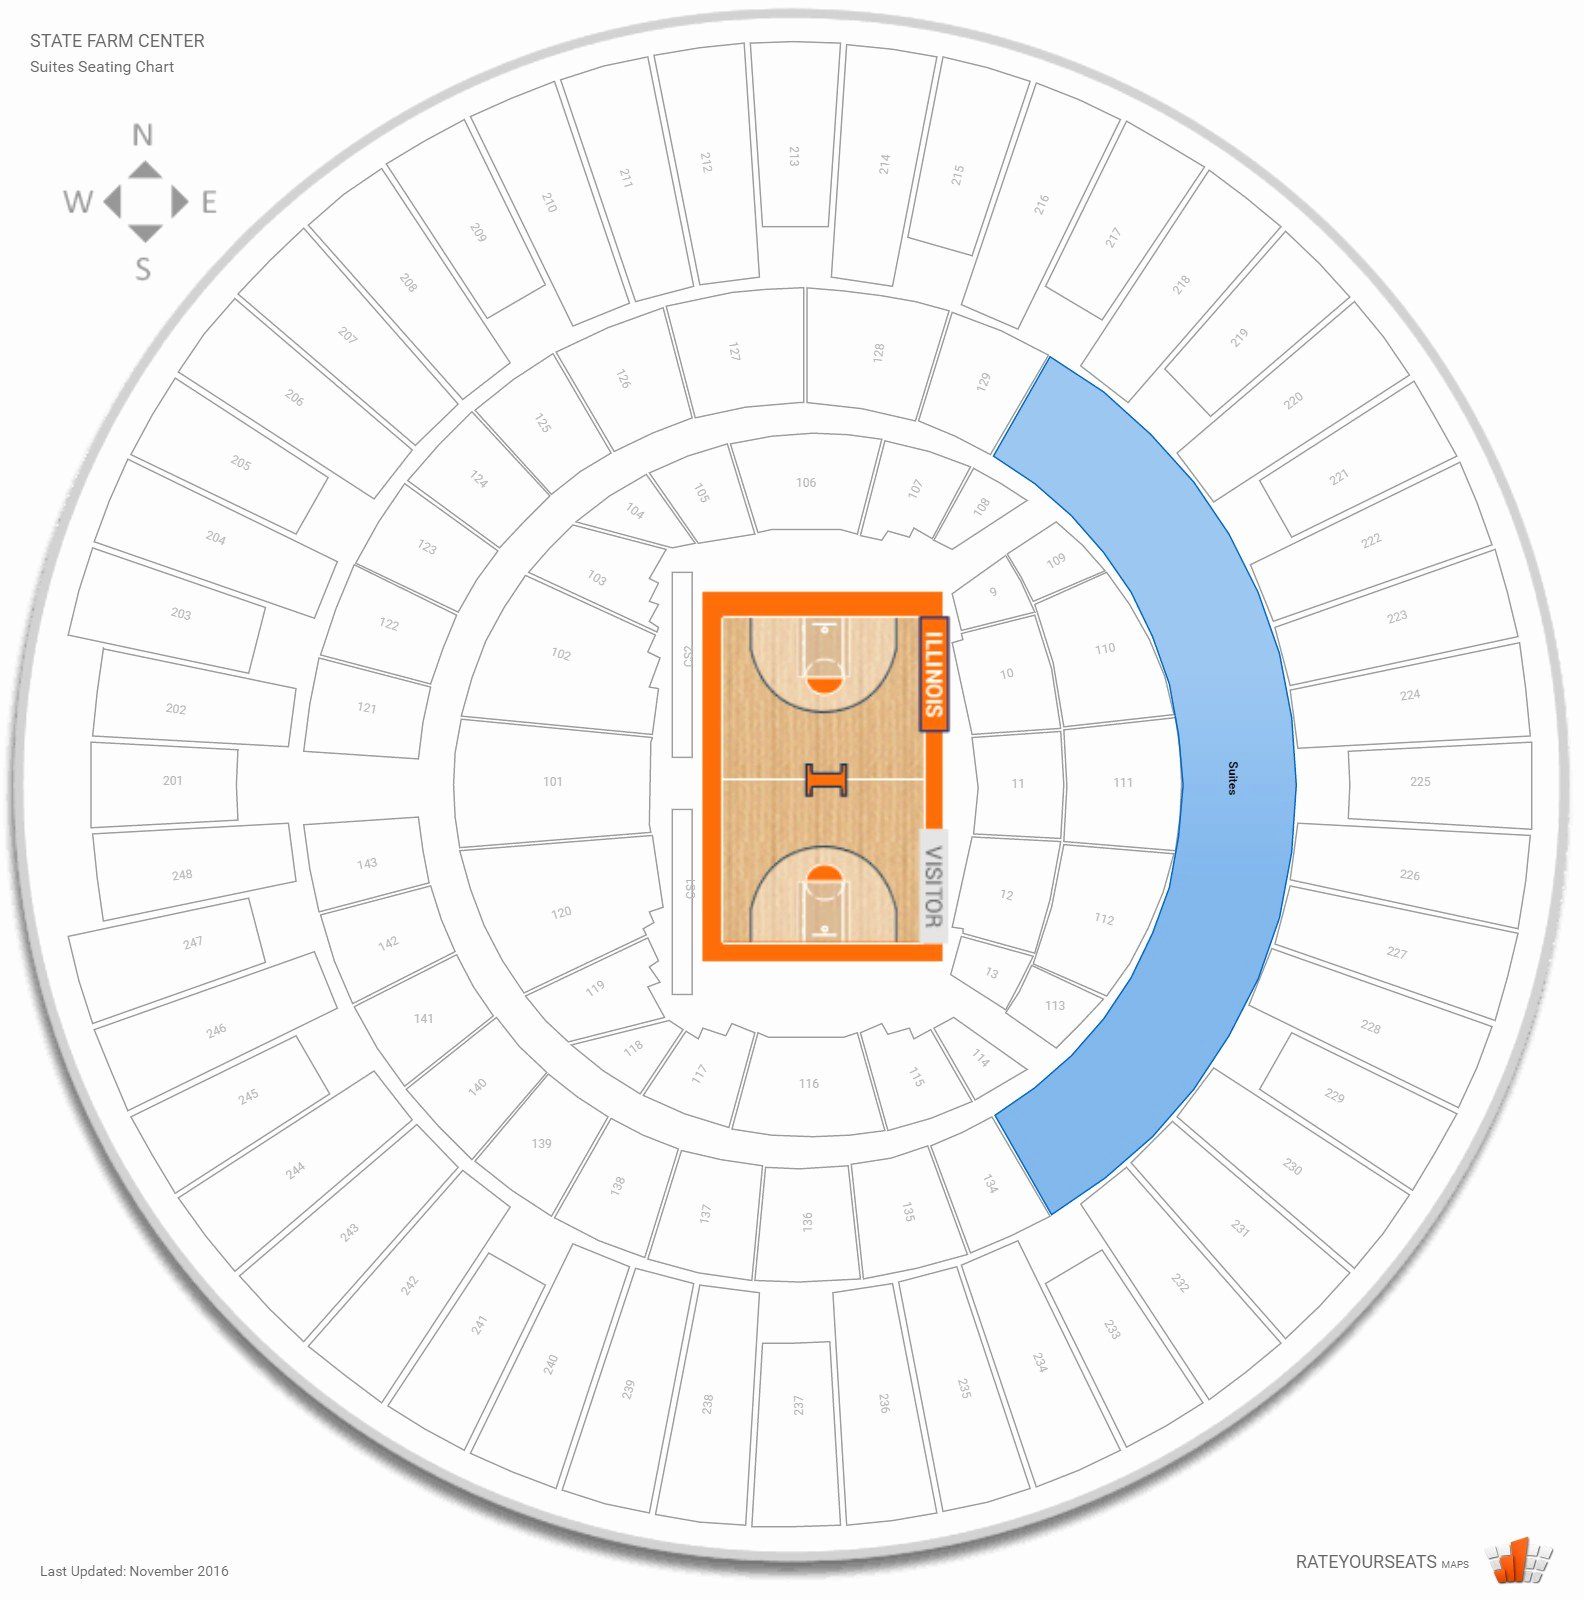 Assembly Hall Seating Chart Lovely Suites State Farm Center Basketball Seating